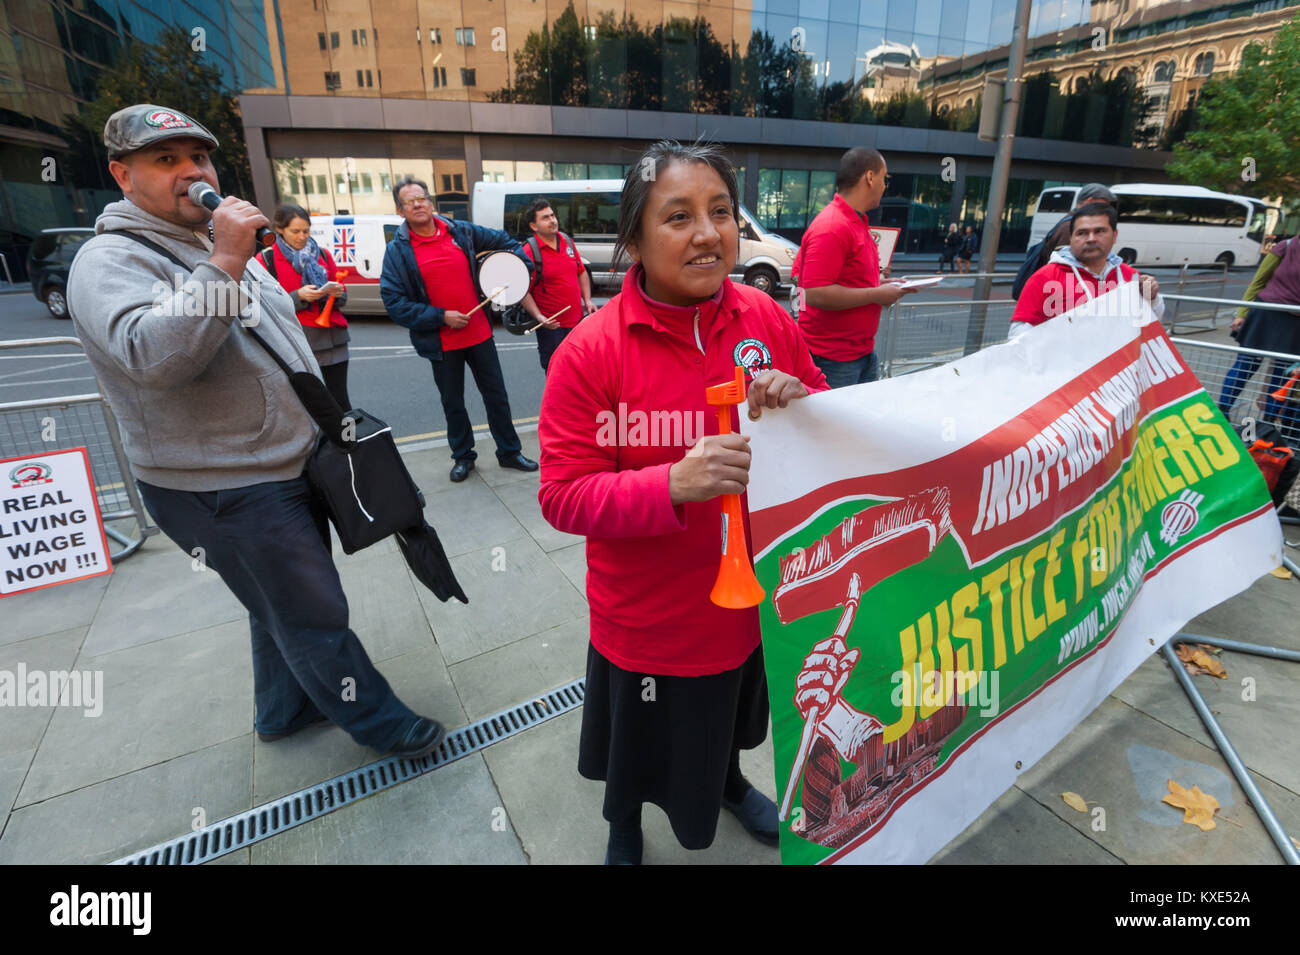 IWGB General Secretary Alberto Durango speaks as the protest for the living wage for Mitie-employed cleaners at - Stock Image